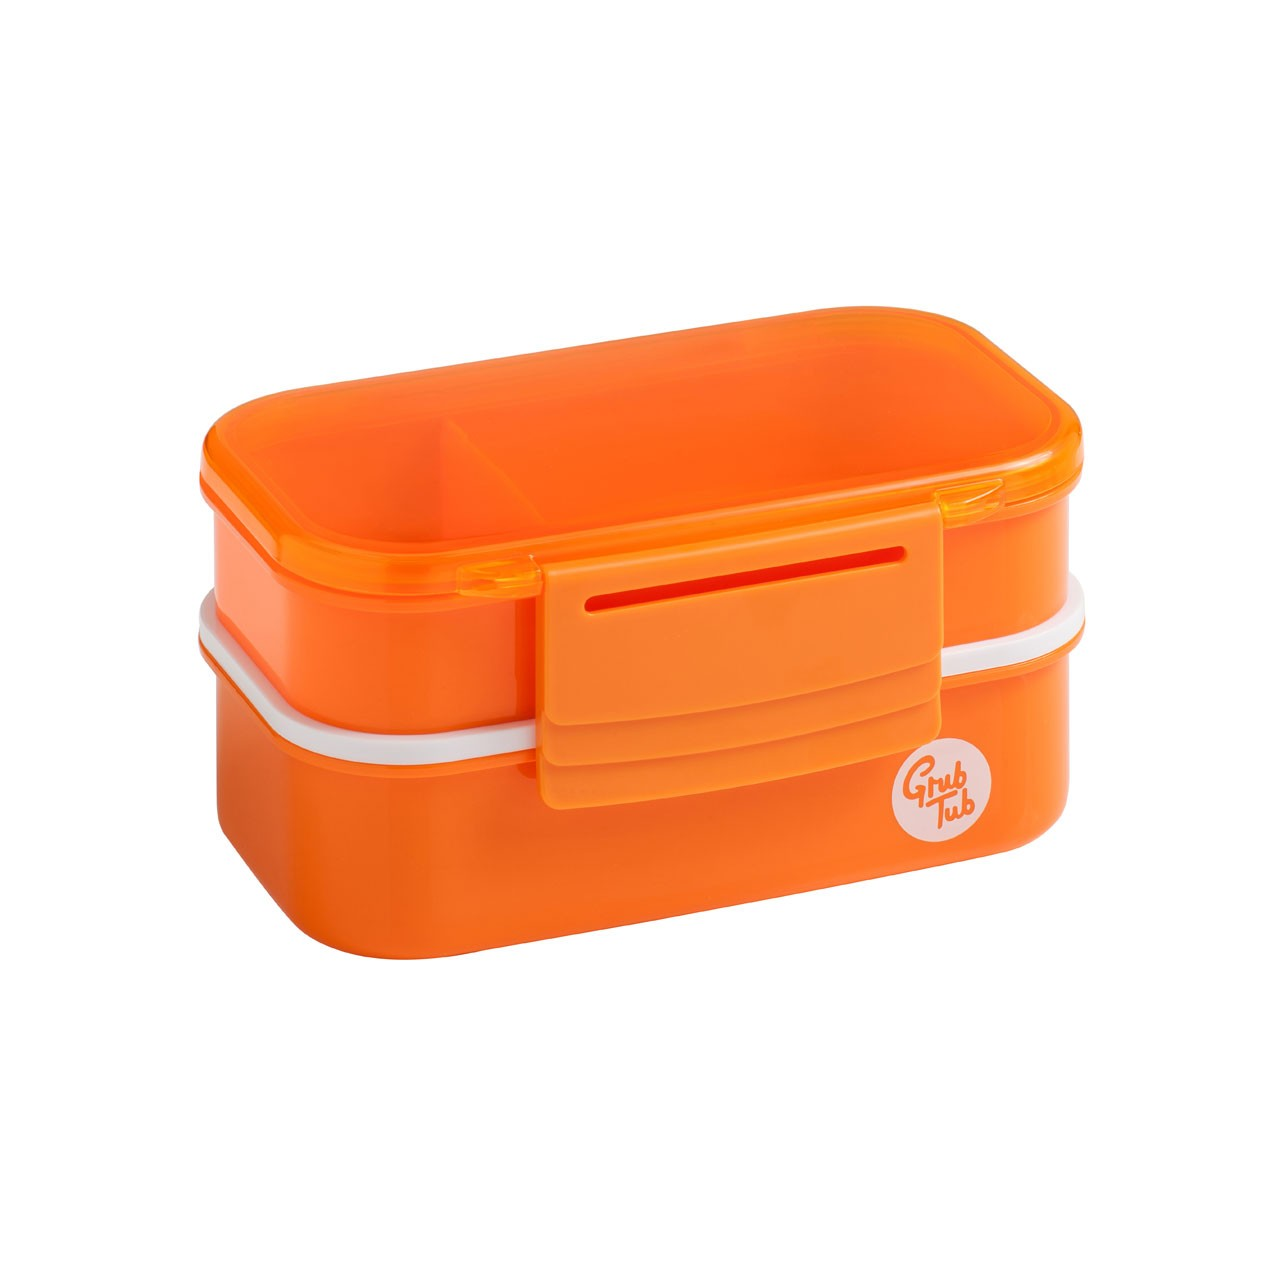 Grub Tub Lunch Box with 2 Containers and Cutlery - Orange